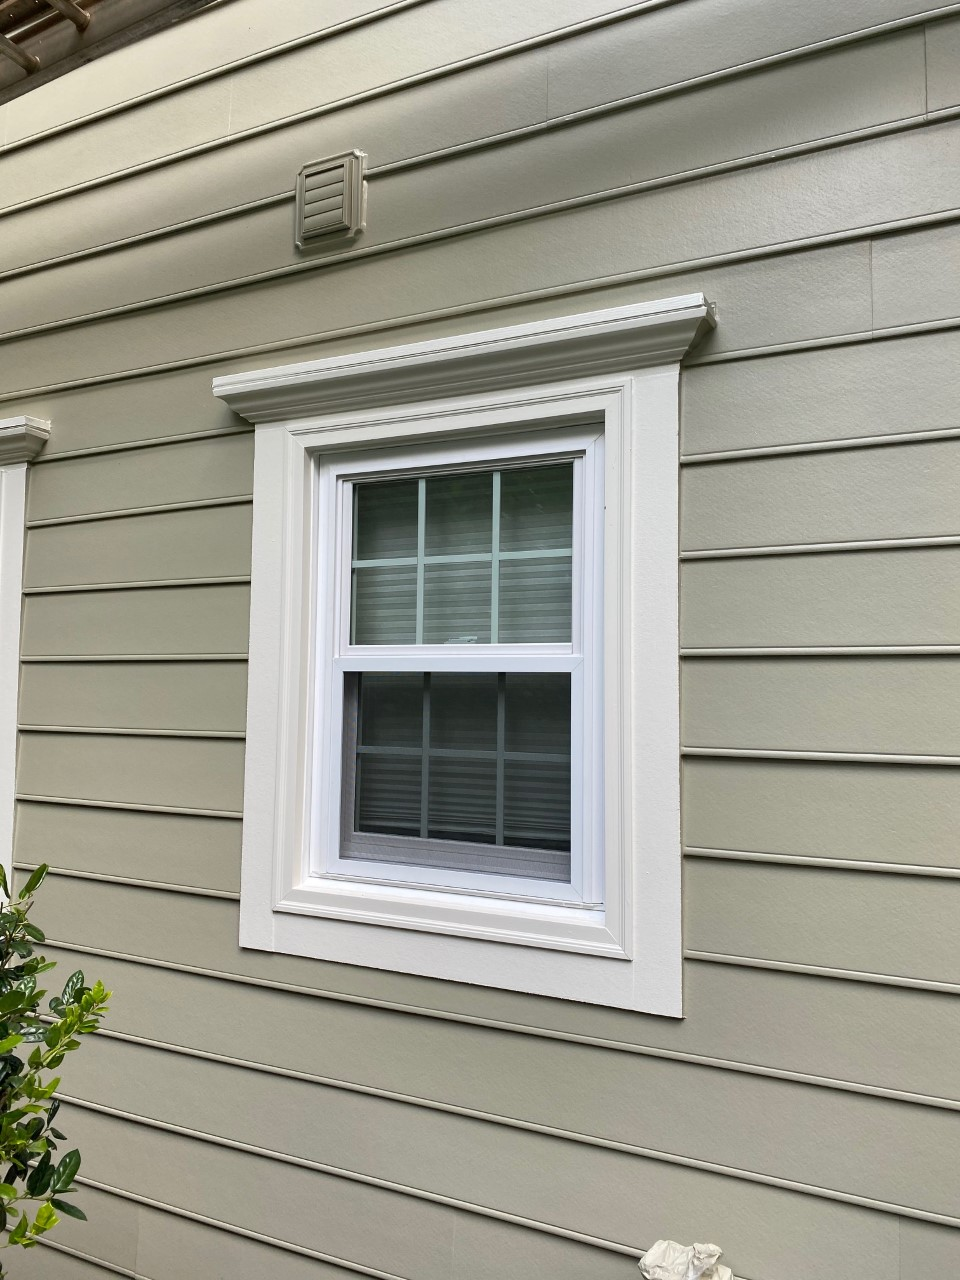 Belk Builders Restores South Charlotte Home with New Siding and Windows